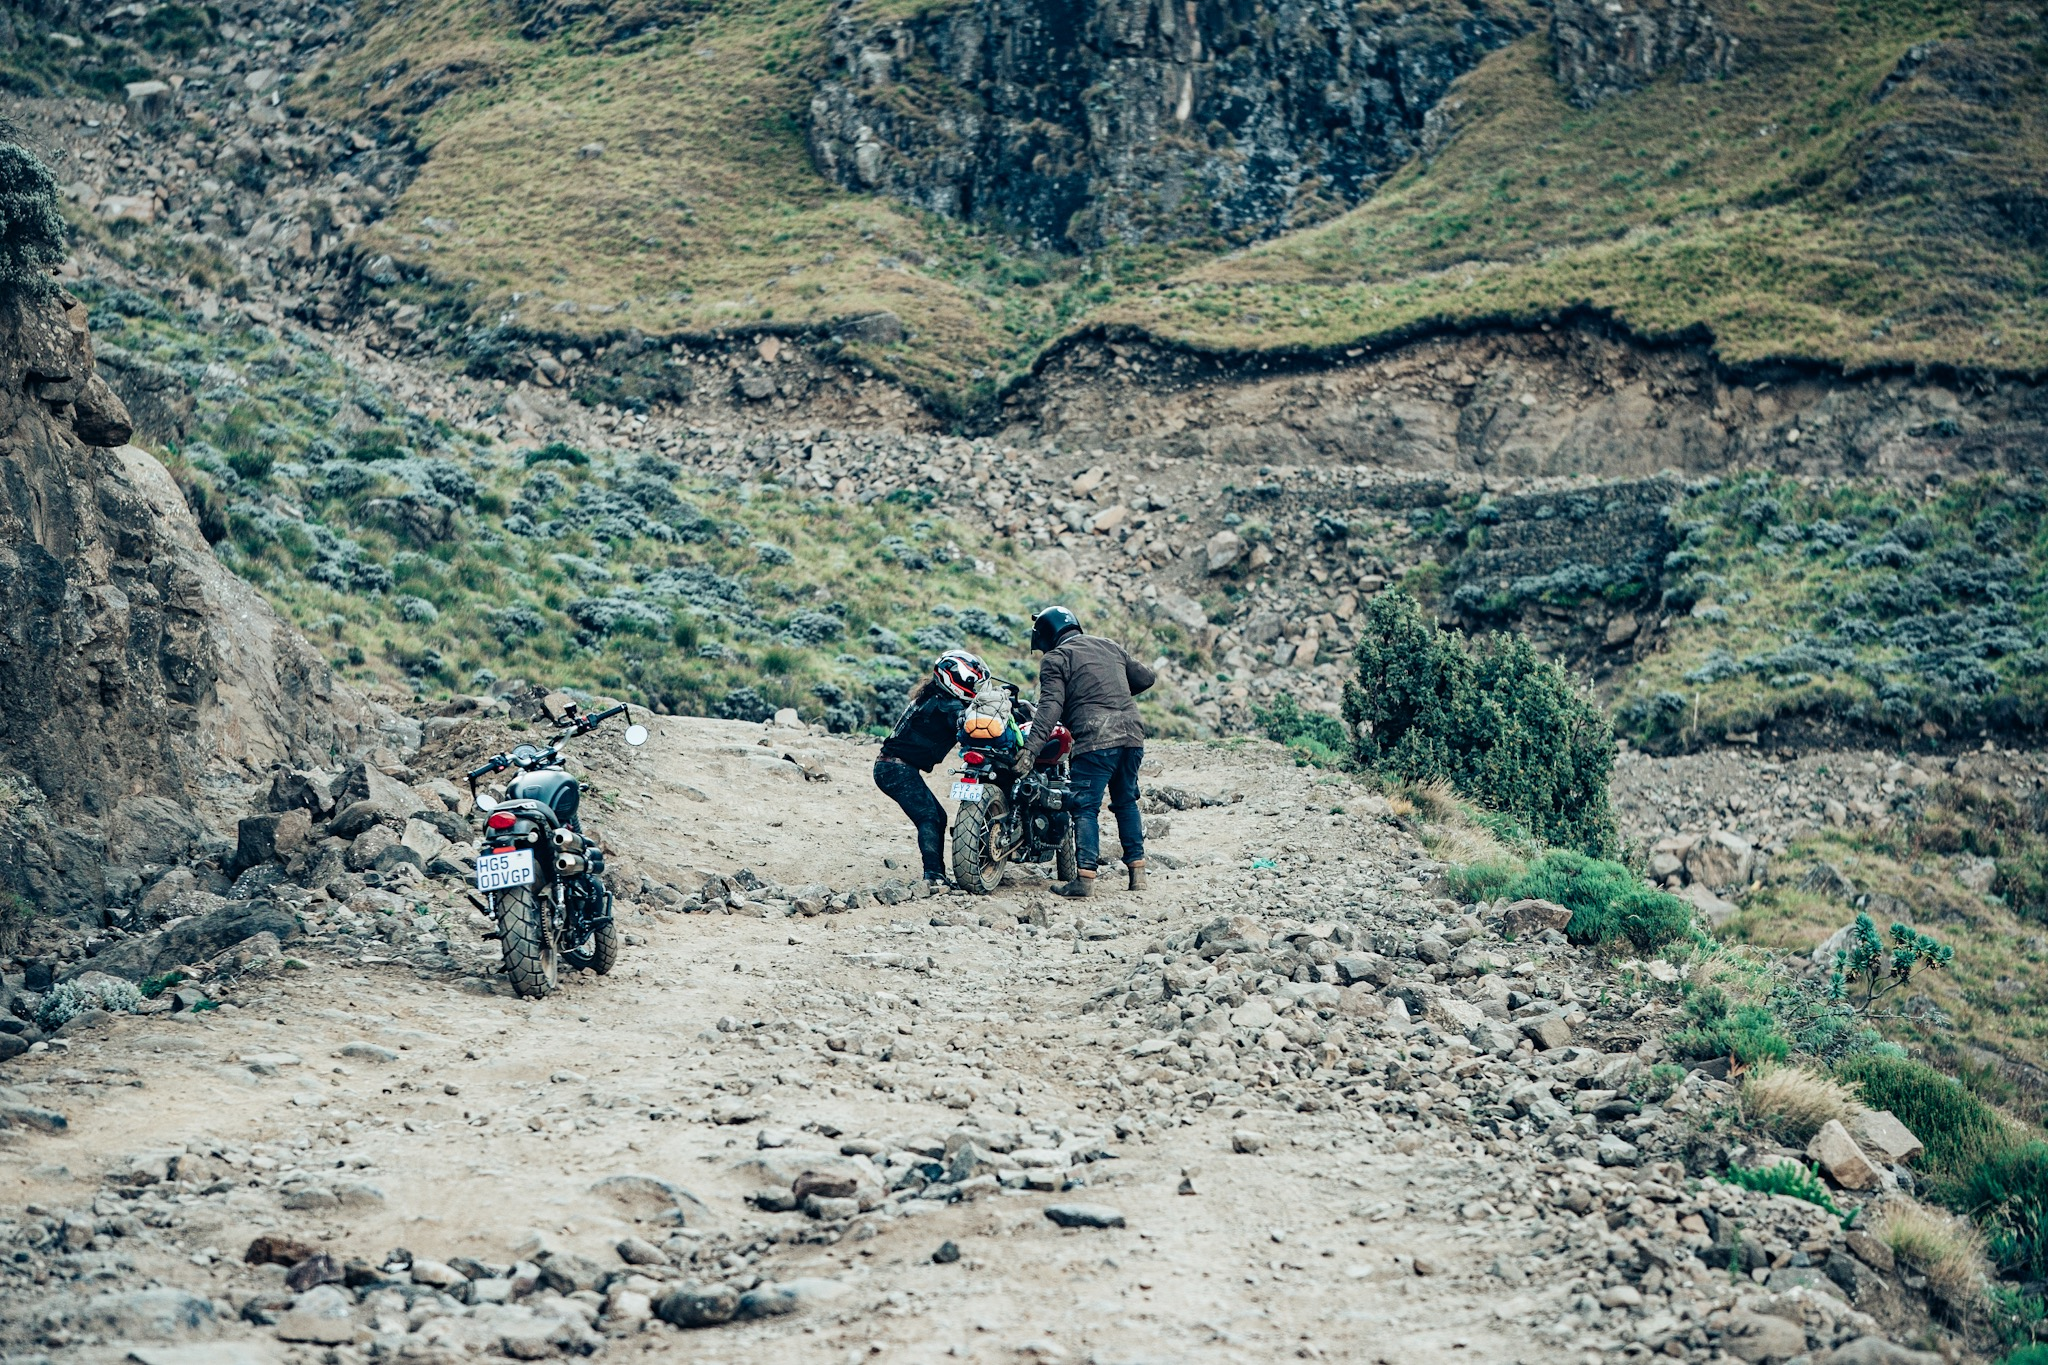 Riding in teams is key to the success of the group. Going up Sani Pass in 2019 was not as easy as we hoped.